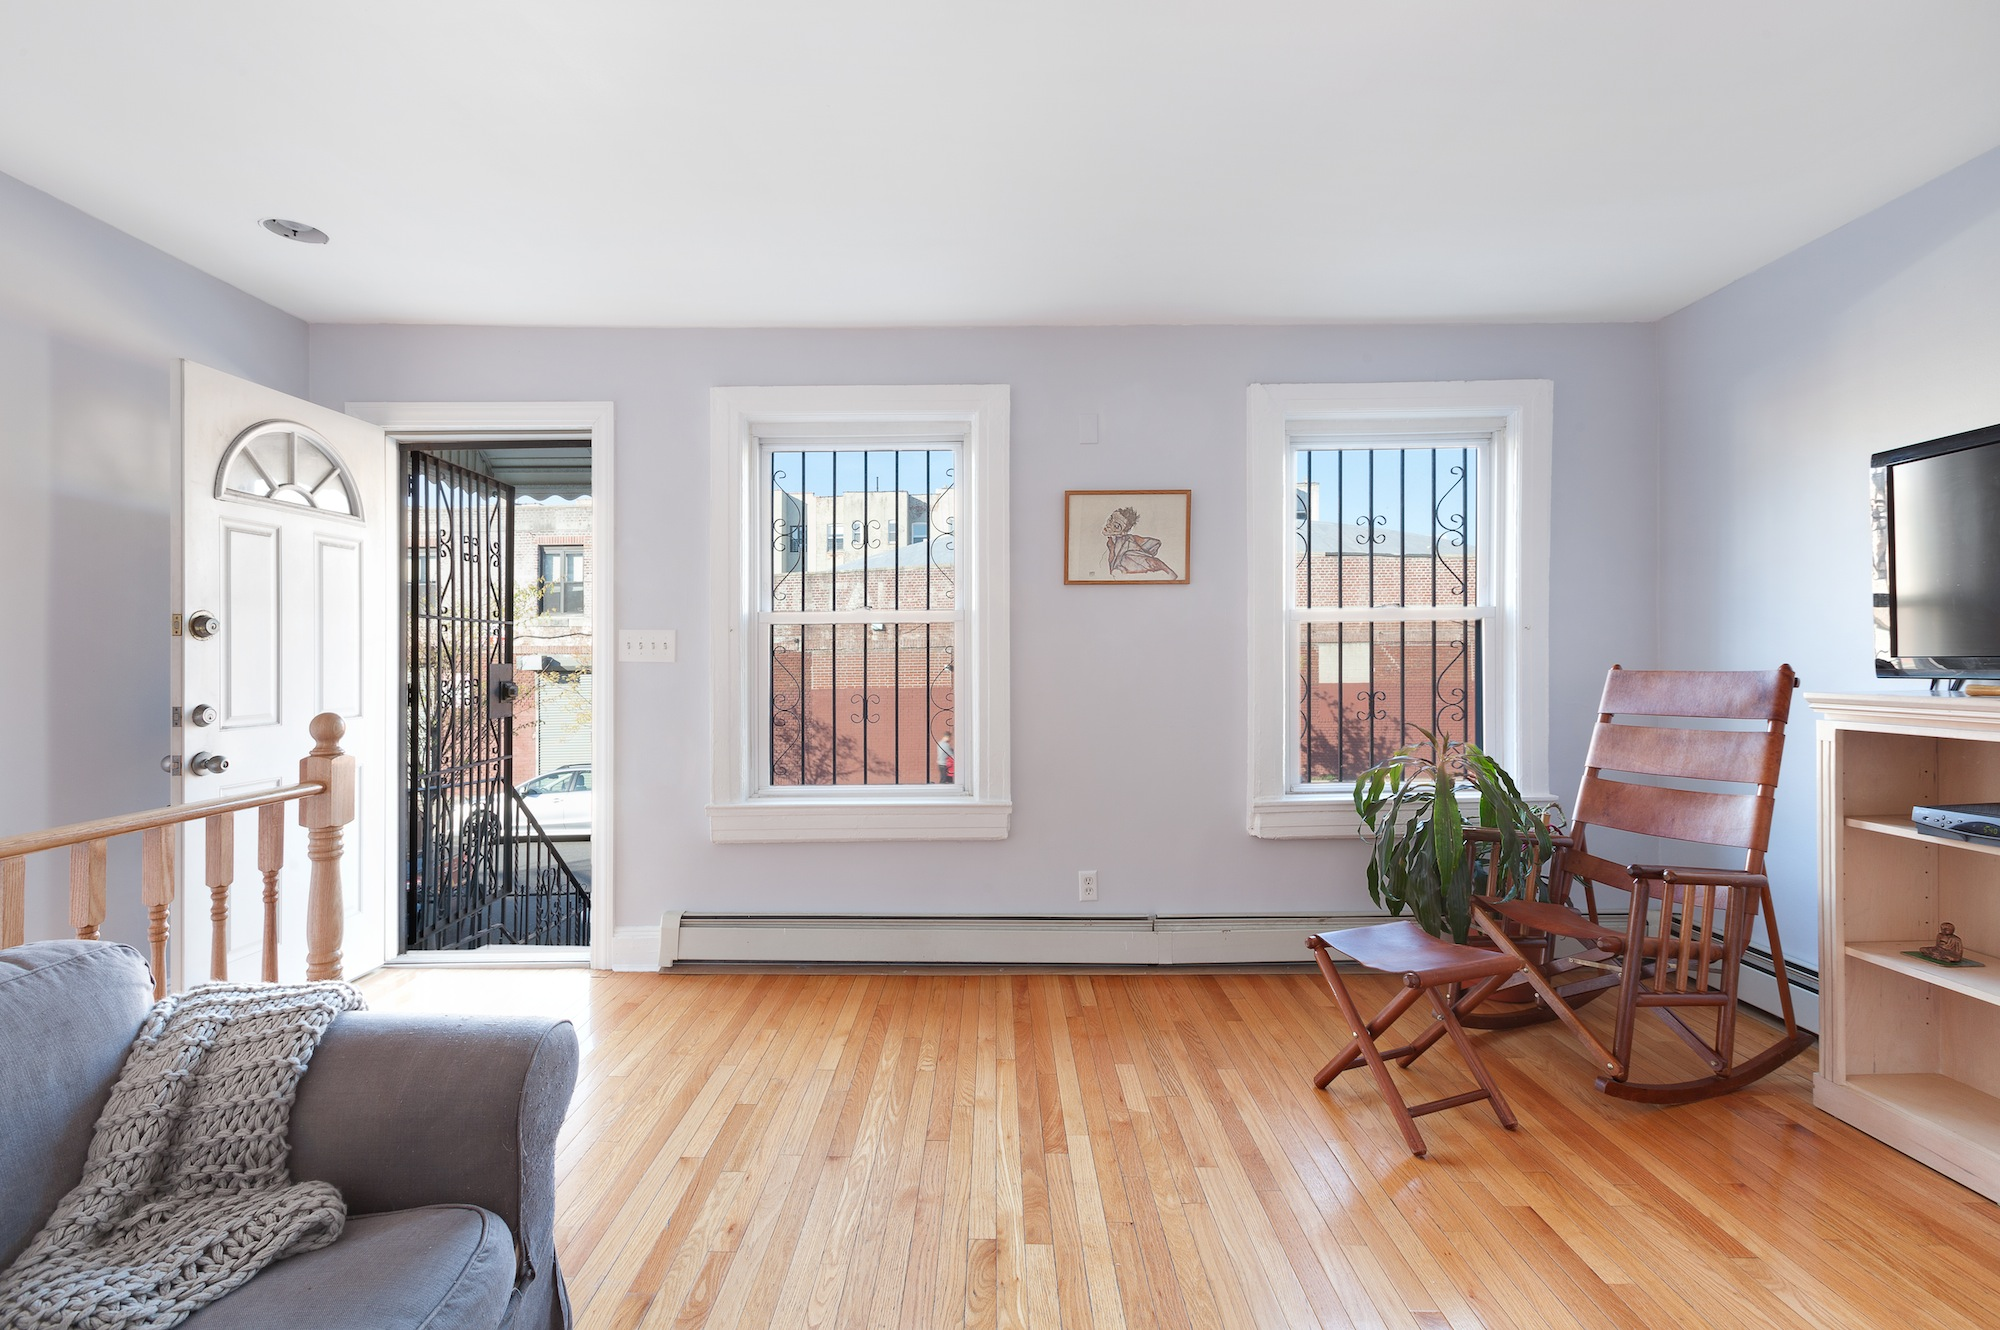 Another Stubby Shotgun House Hits The Market In Brooklyn This One Asking 999k 6sqft